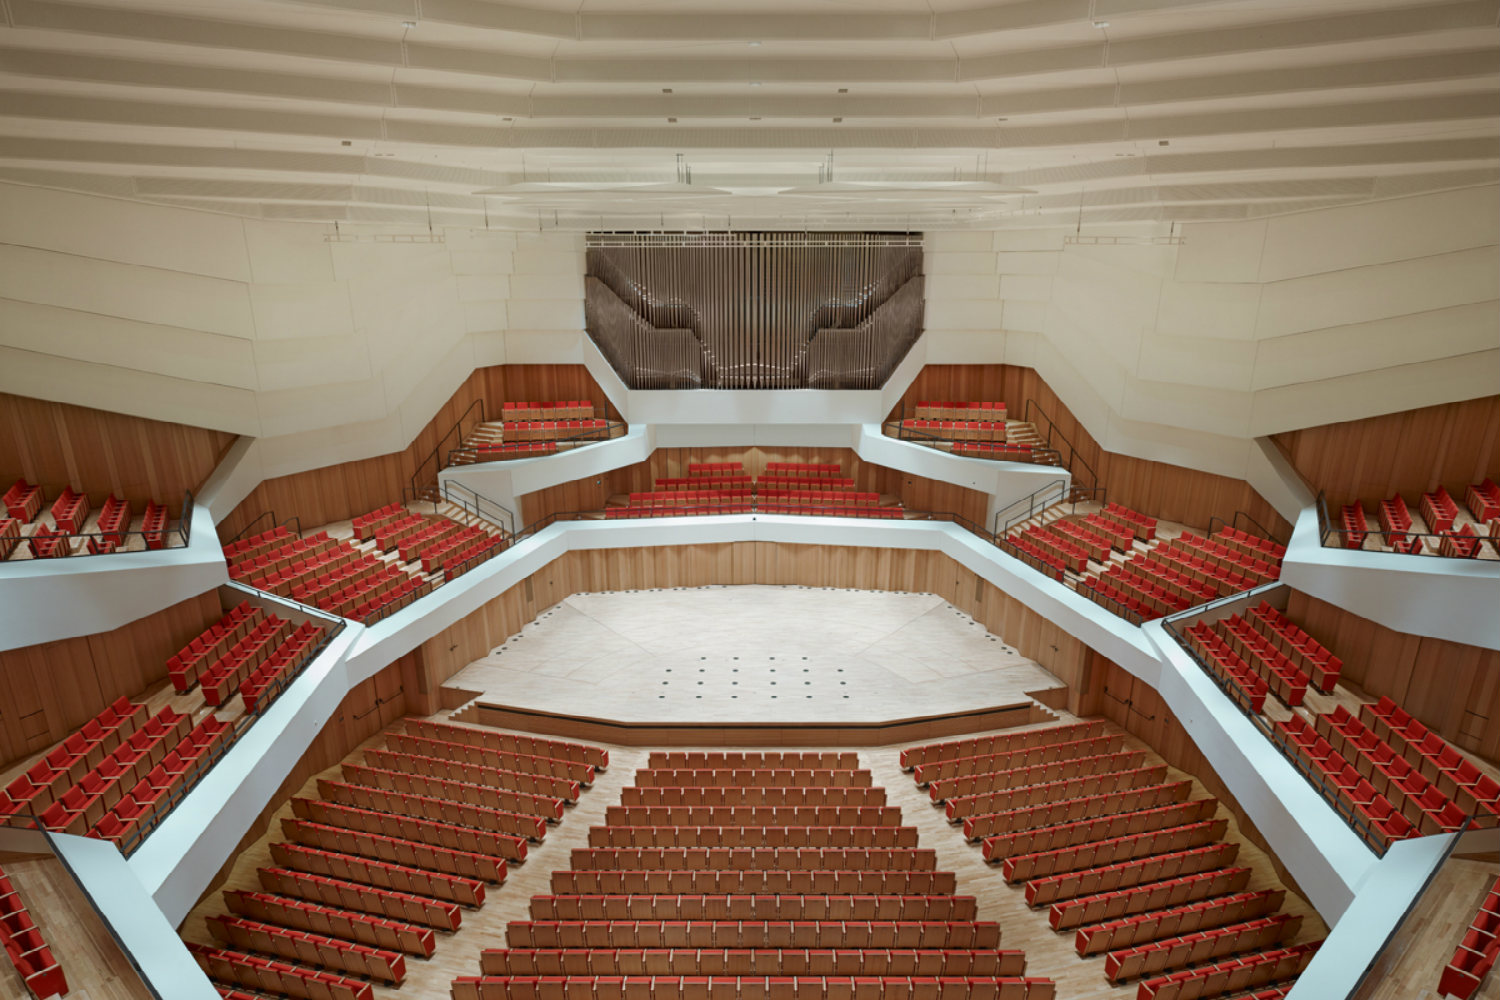 Located in the middle of Dresden's old town, the Kulturpalast highlights with its glass facades and striking roof structure. ADA (WSDG) was the responsible acoustician and consultant for the renovation. Interior View from Above